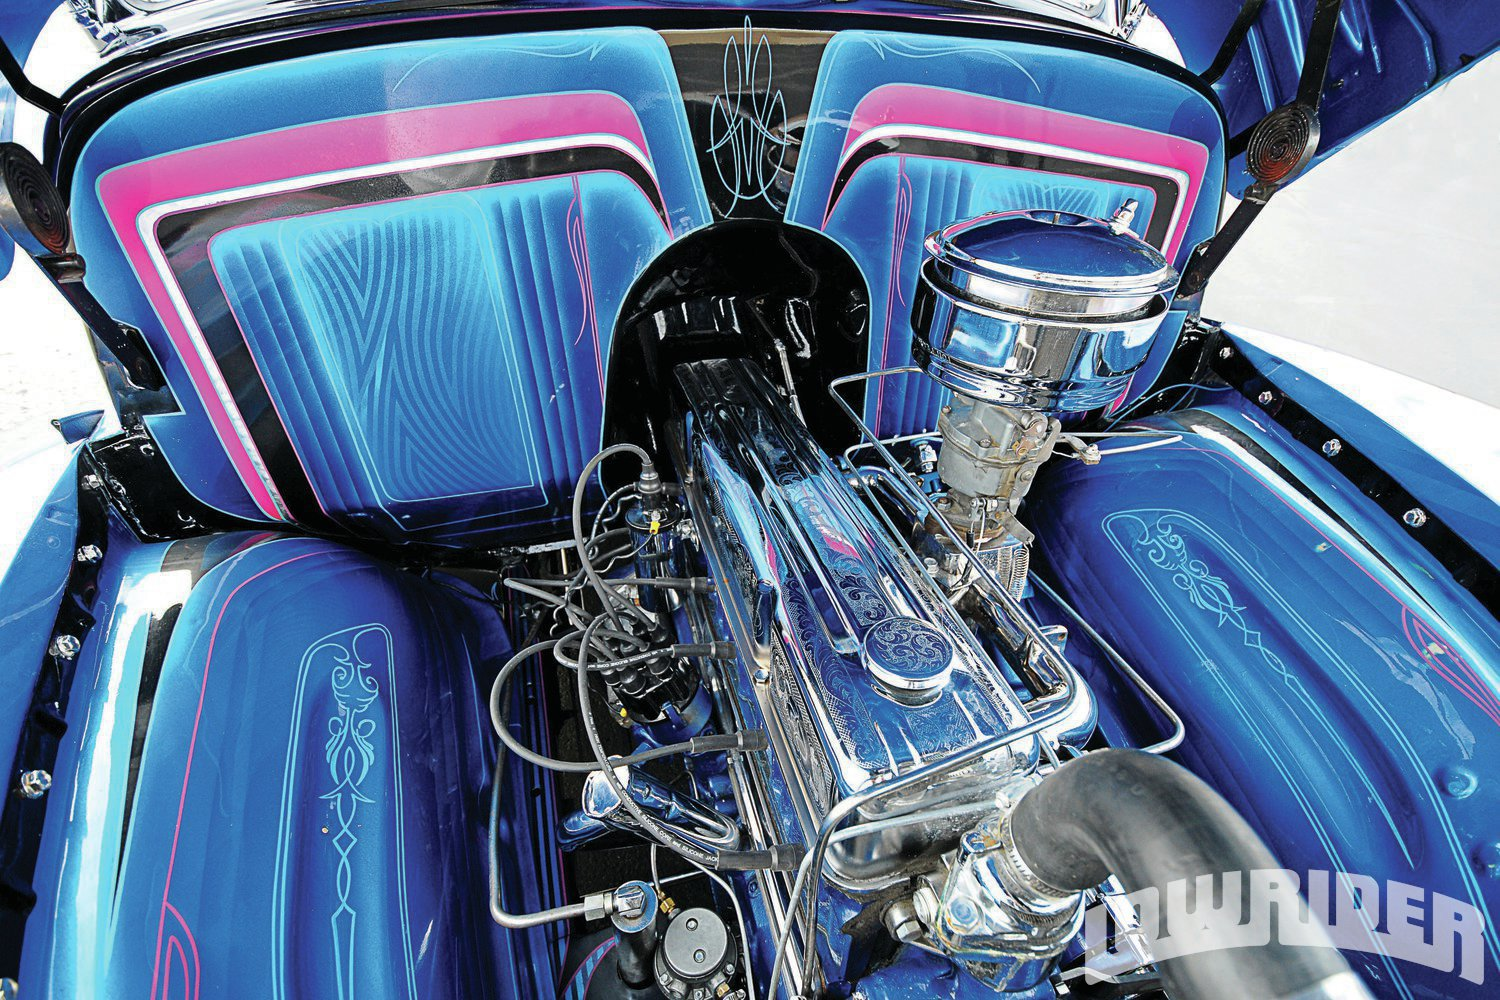 1949 Chevrolet Truck - Lowrider Magazine